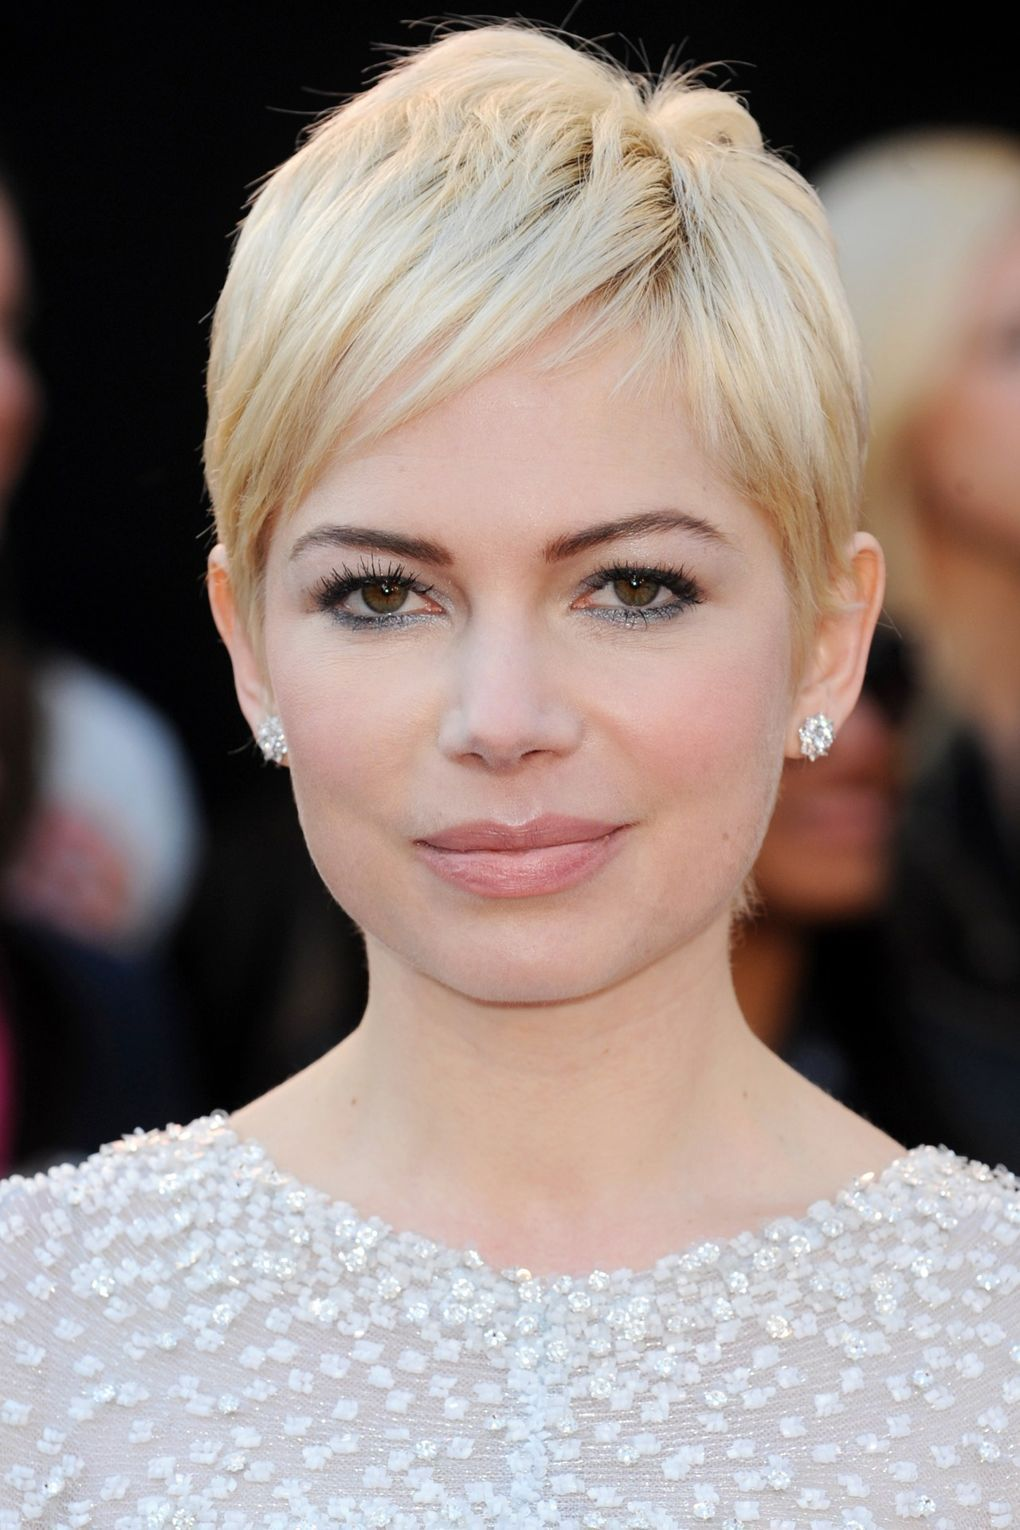 Boy haircuts not too short michelle williams hair style file  michelle williams hair and